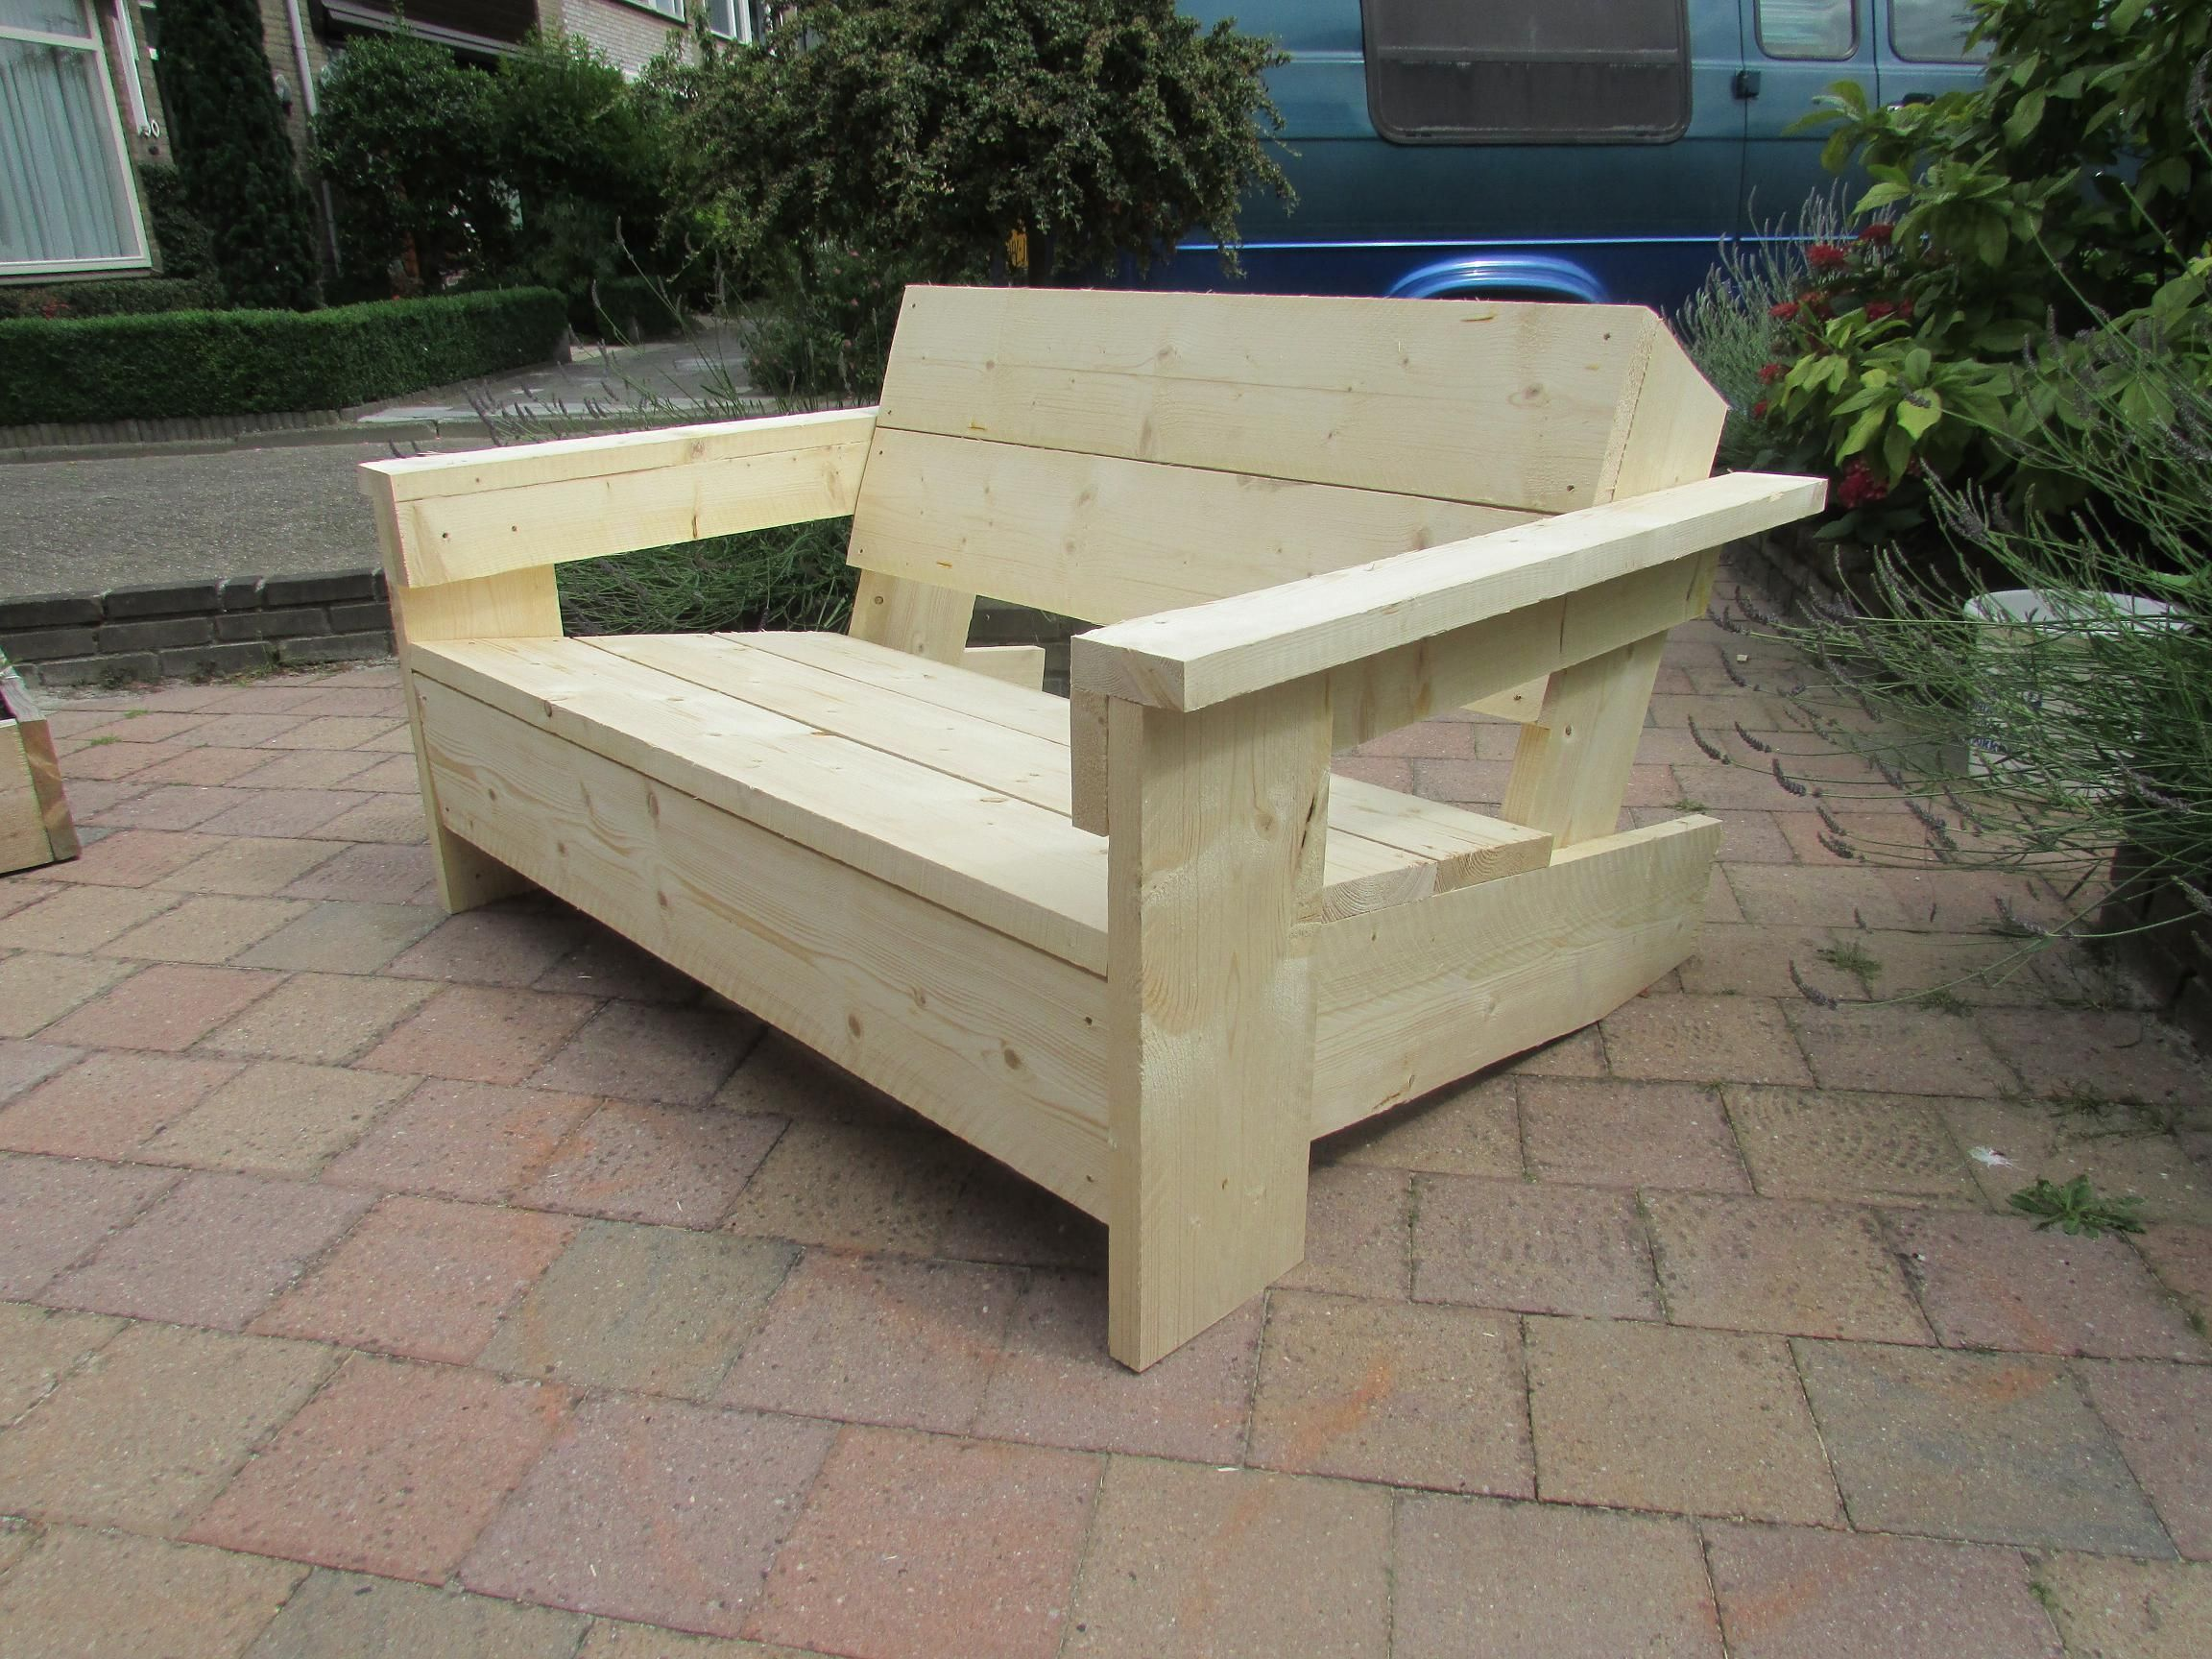 Bouwtekening Steigerhout Bouwtekening Relax Loungestoel Bank To Build Diy Furniture